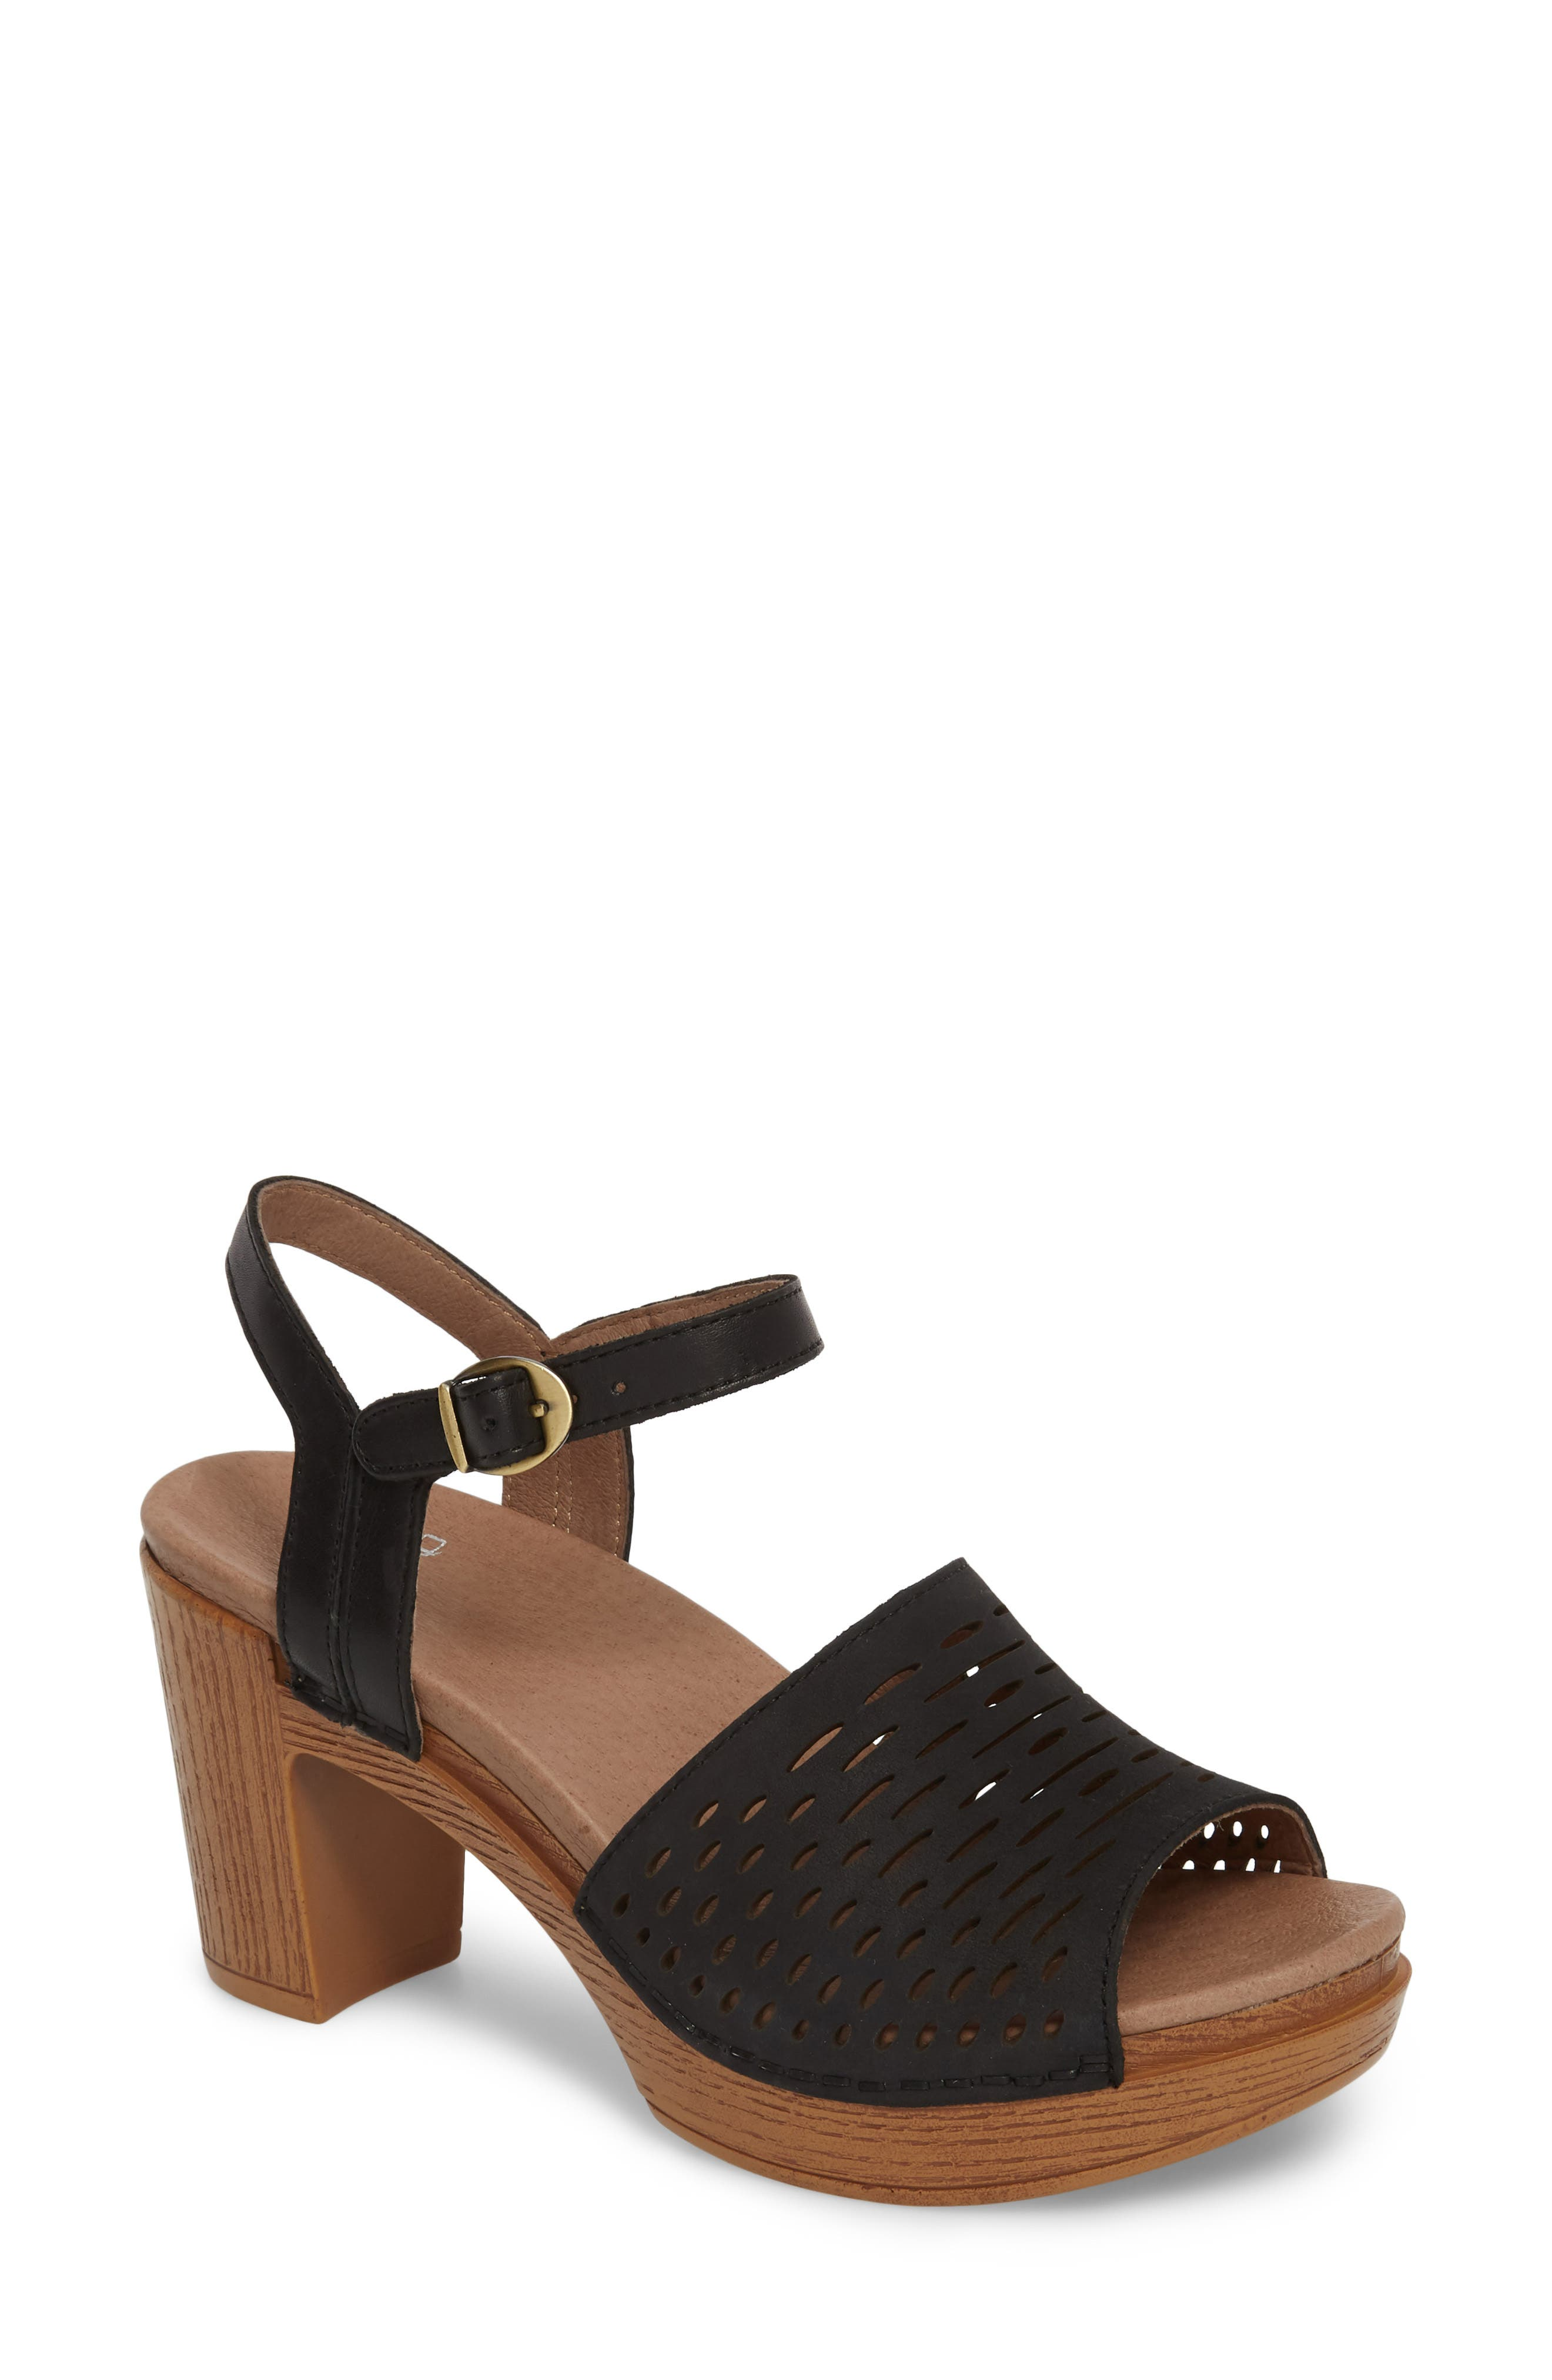 Denita Block Heel Sandal,                         Main,                         color, Black Milled Nubuck Leather